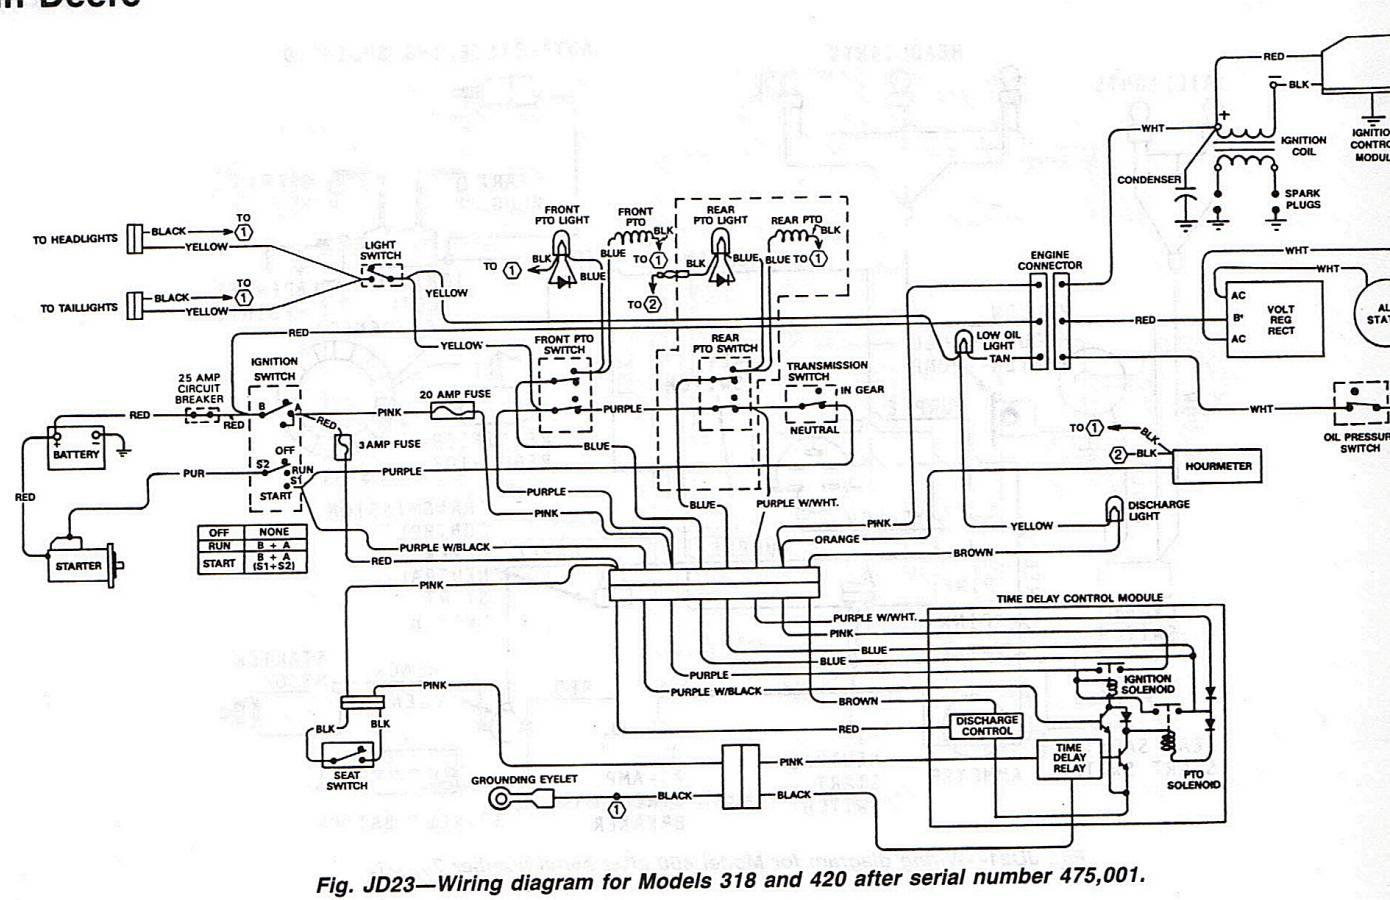 john deere 345 ignition wiring diagram i have a deere 420 garden tractor (1992) that just quit on ...